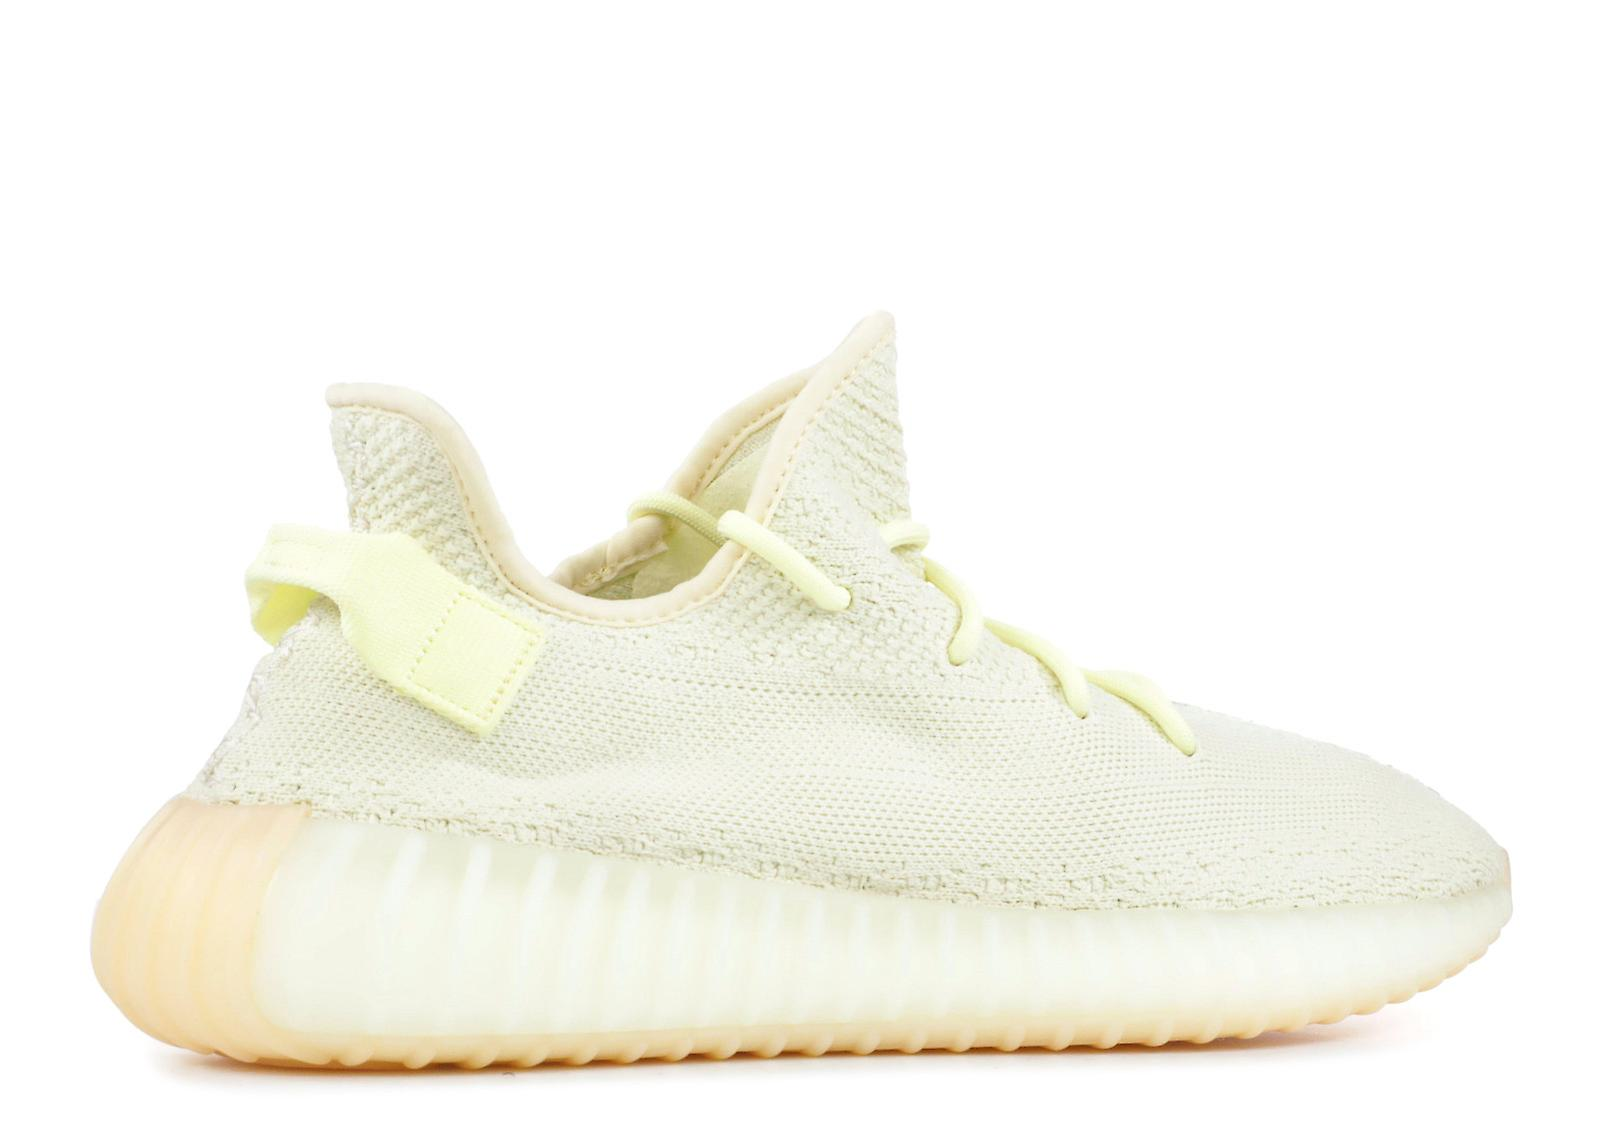 huge discount f2190 6e8f9 Adidas Yeezy Boost 350 V2 'Butter' - F36980 - Shoes